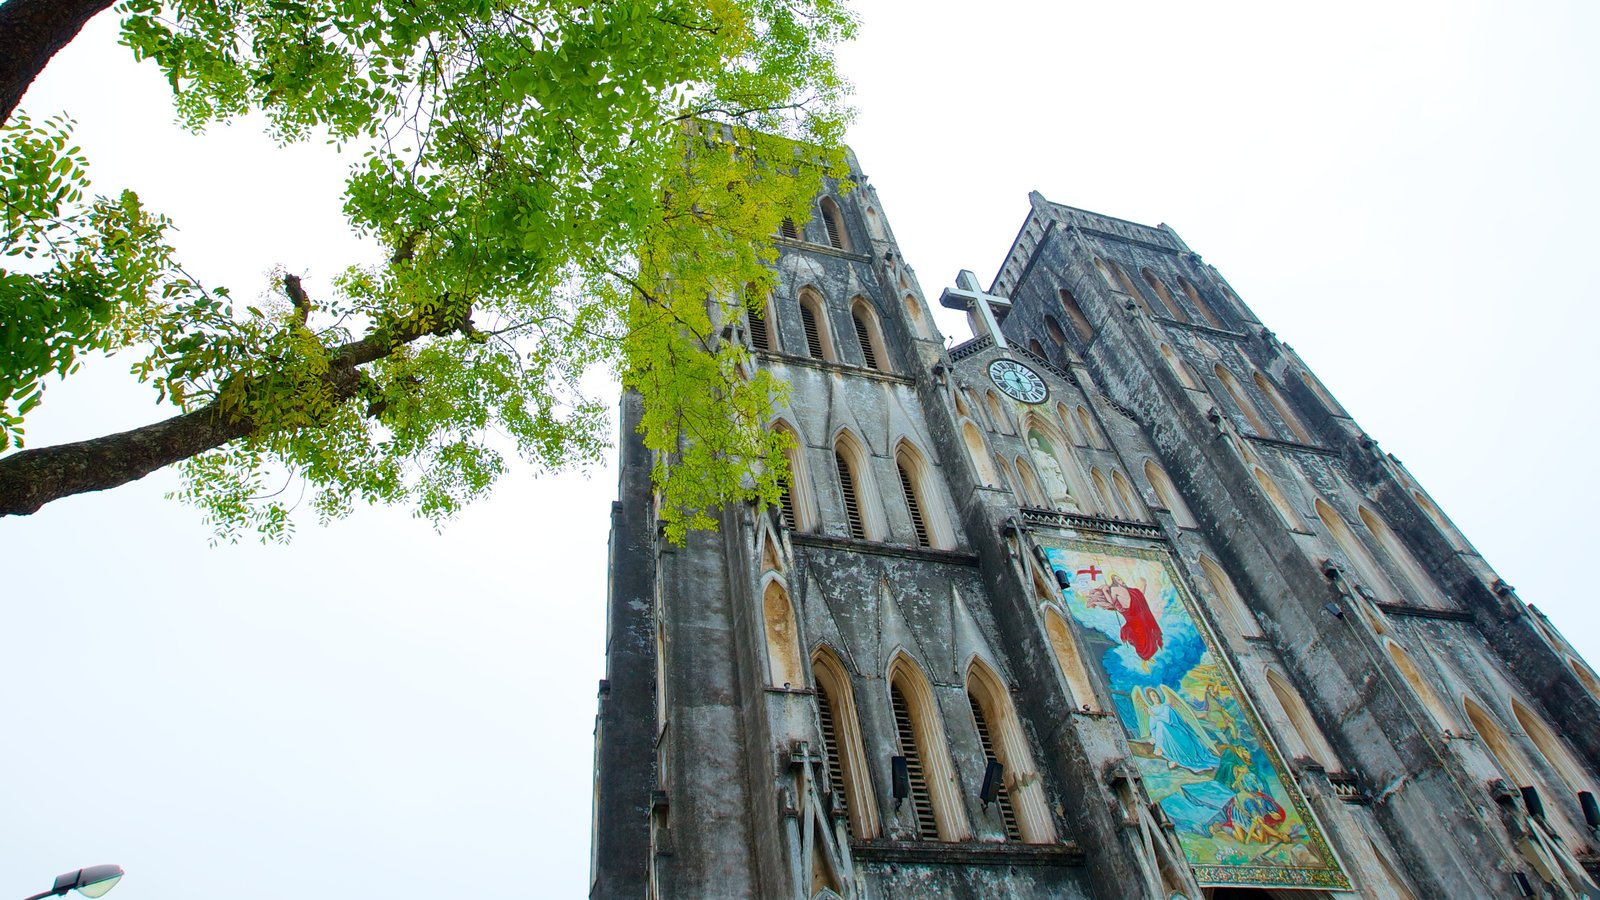 St. Joseph Cathedral which includes a church or cathedral, religious aspects and heritage architecture